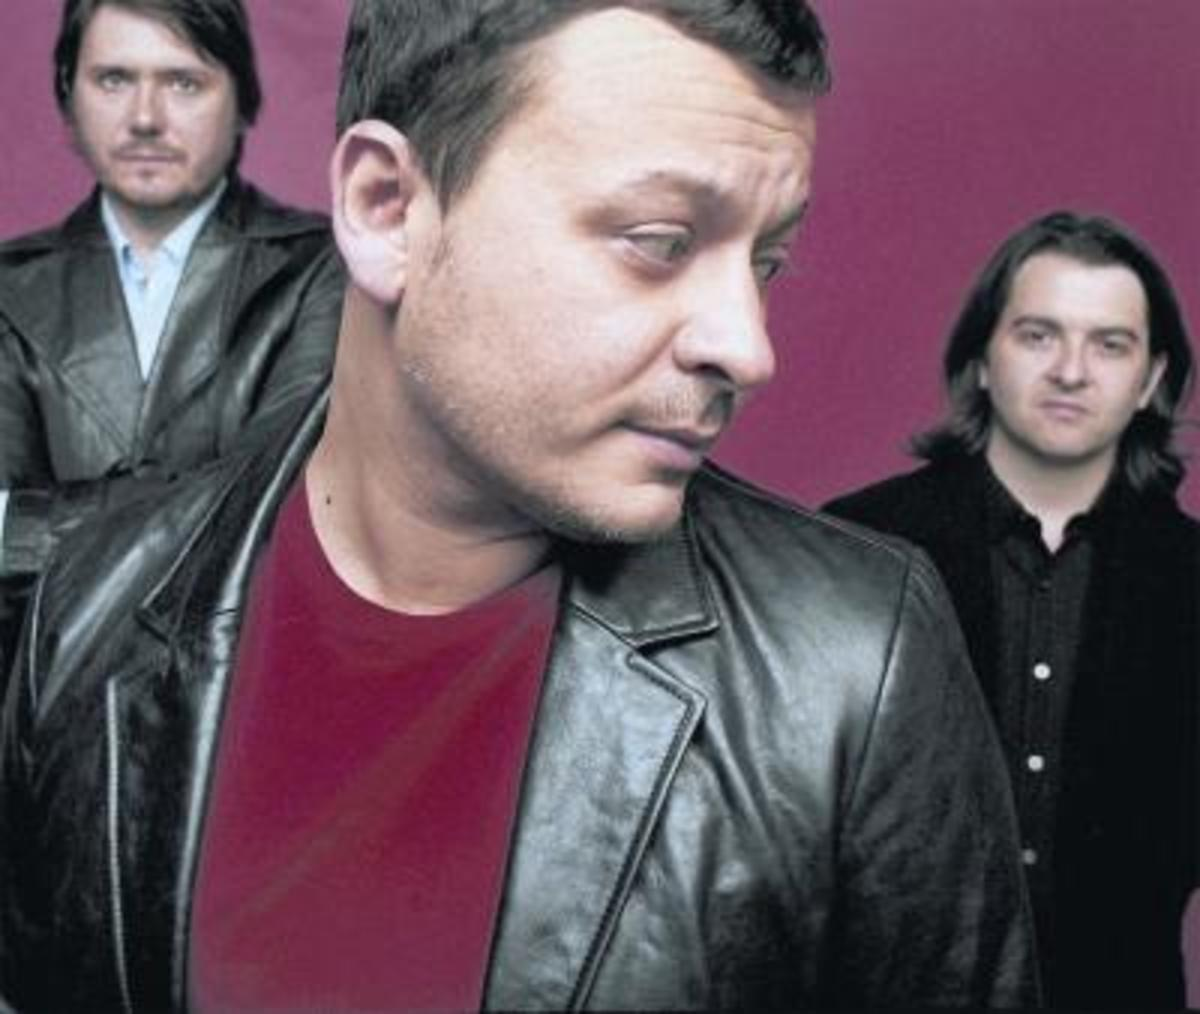 The Manic Street Preachers recently performed several live sessions on UK radio to promote their latest album, Postcards From A Young Man.